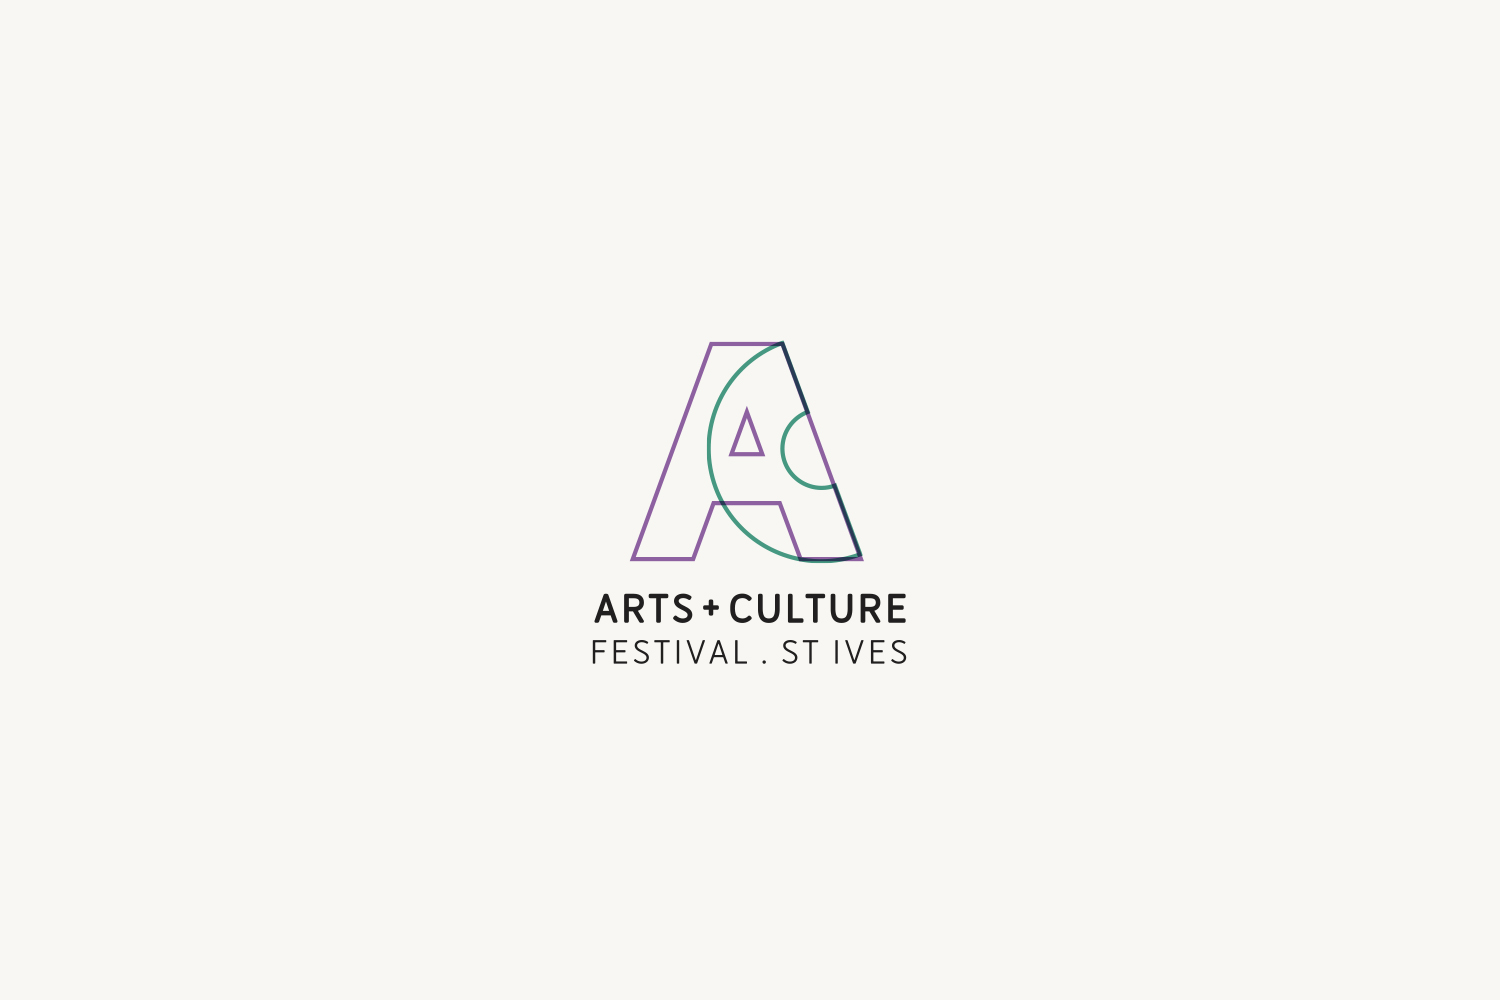 19b.Becca_Allen_Arts_and_Culture_Festival_St_Ives_Logo.jpg